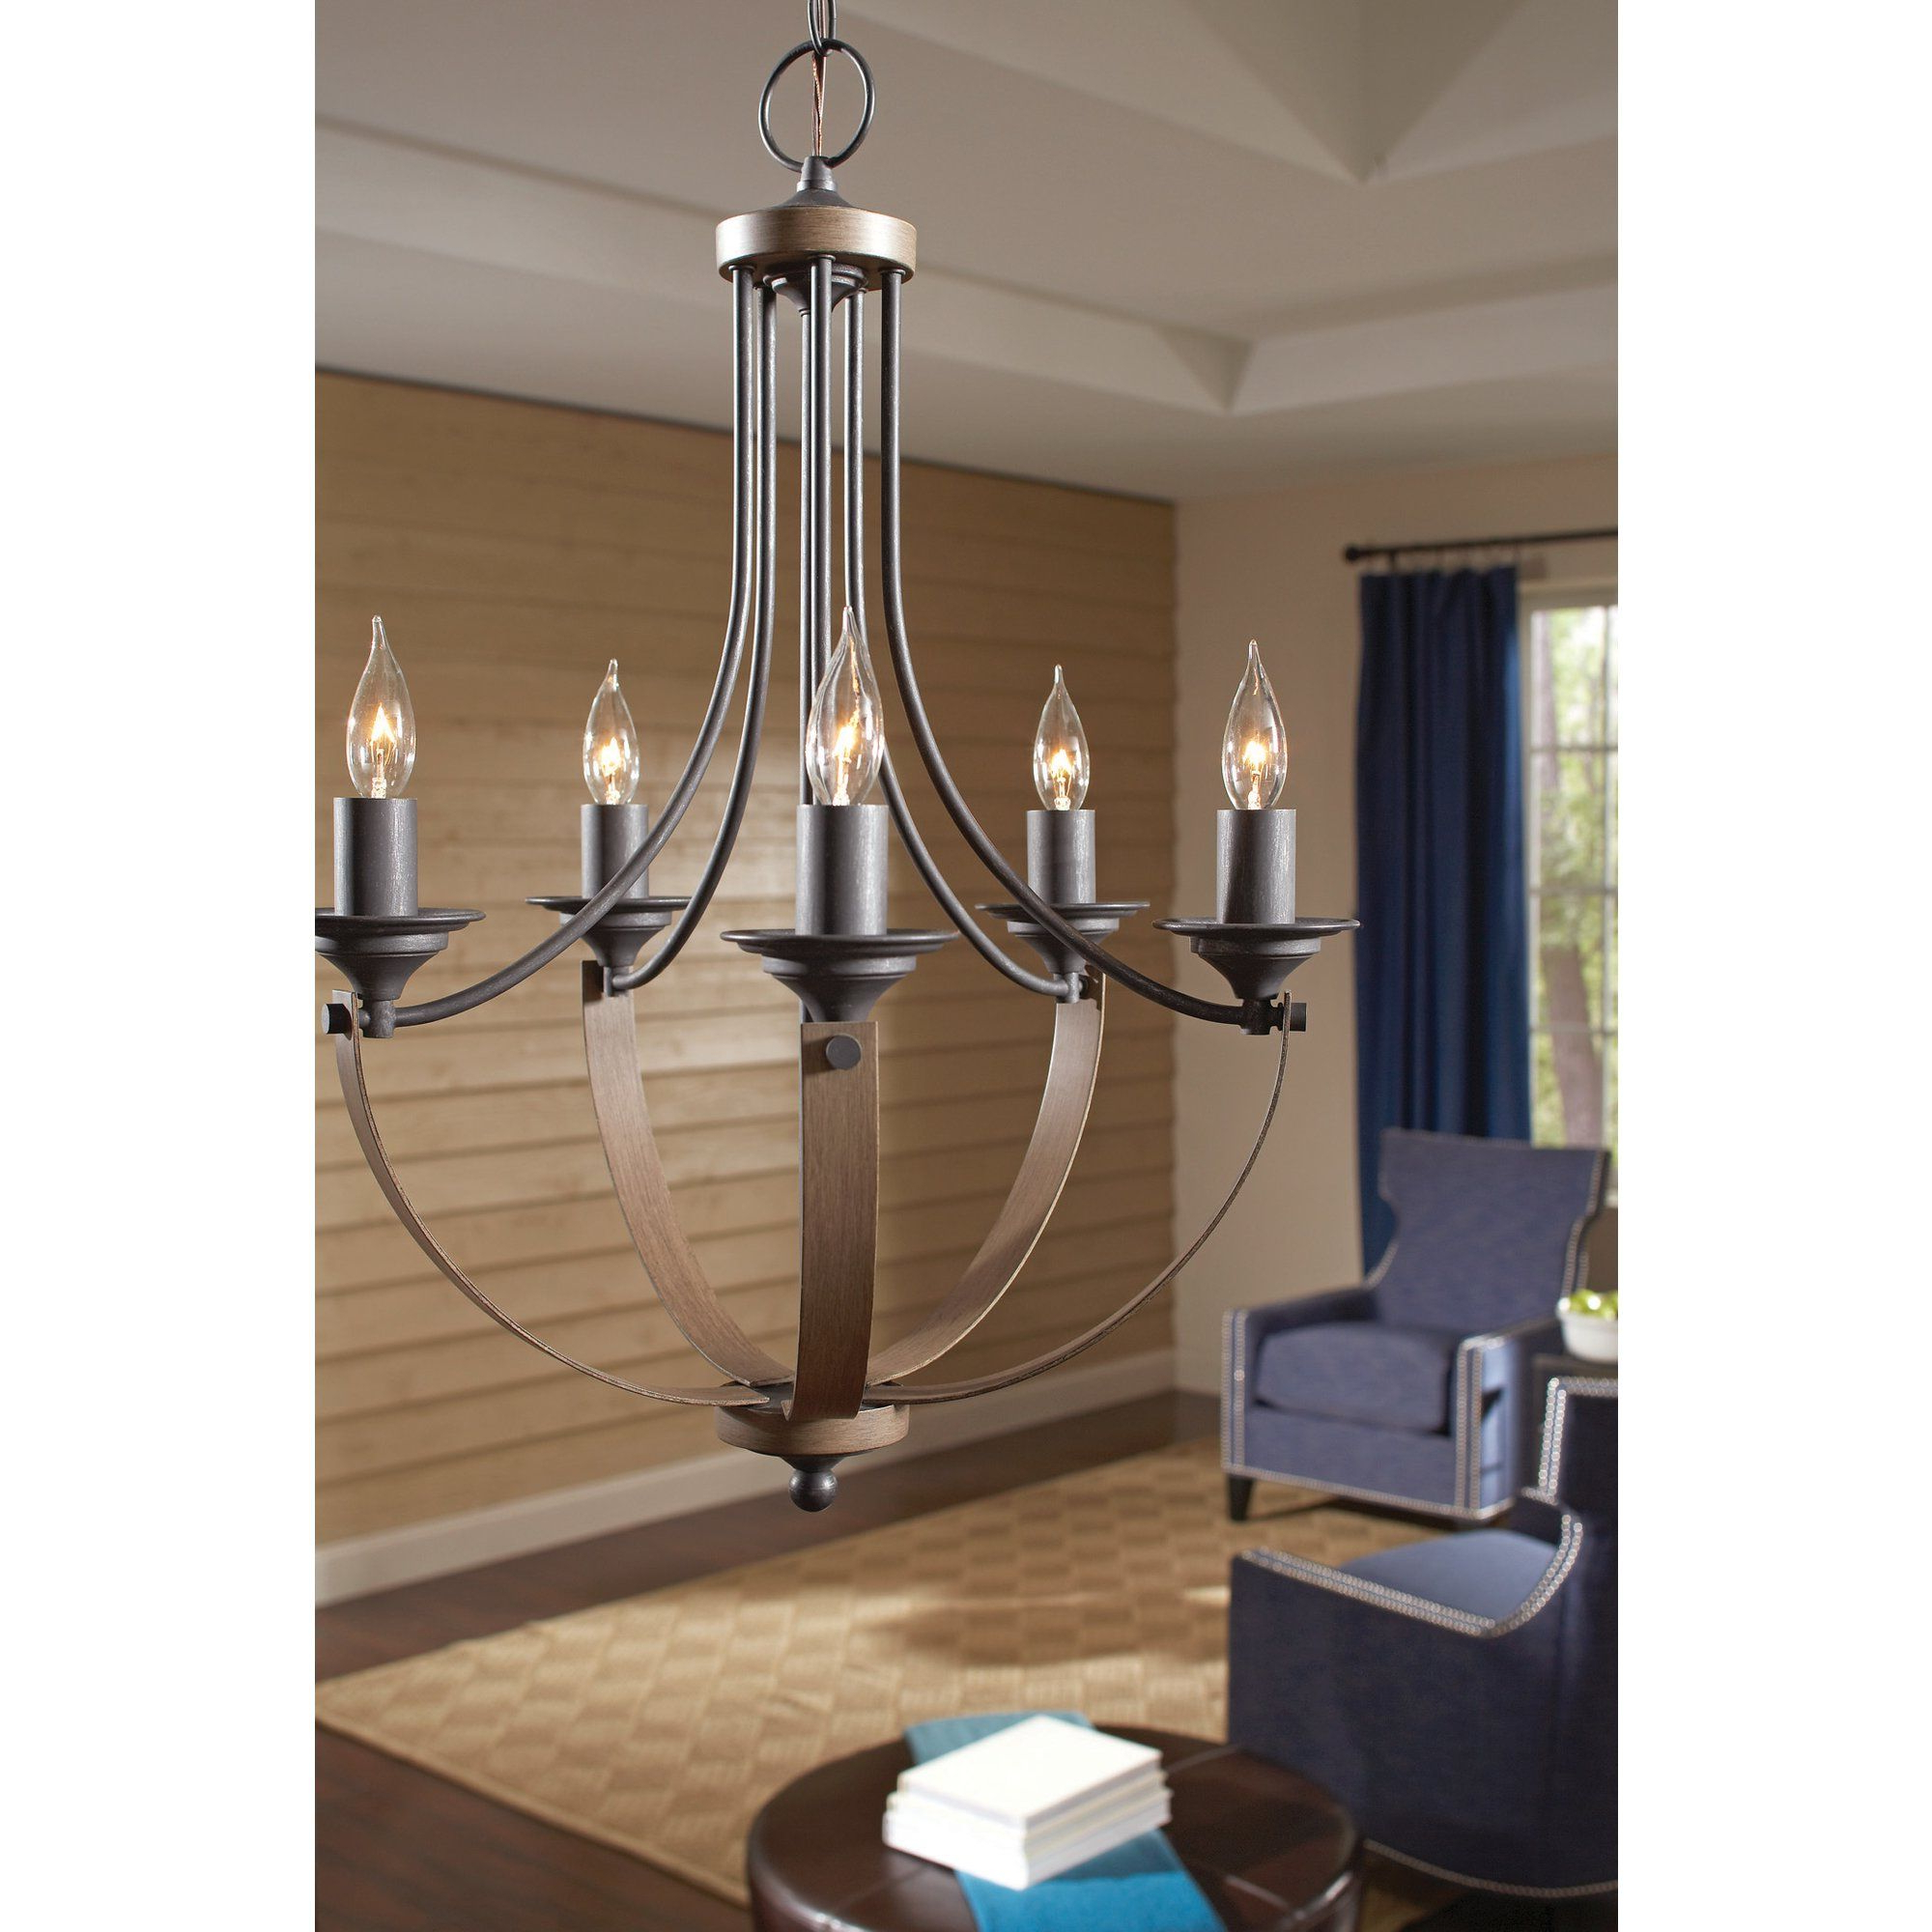 Camilla 9 Light Candle Style Chandeliers In Most Popular 25 Camilla 9 Light Candle Style Chandelier – Divineducation (View 5 of 25)